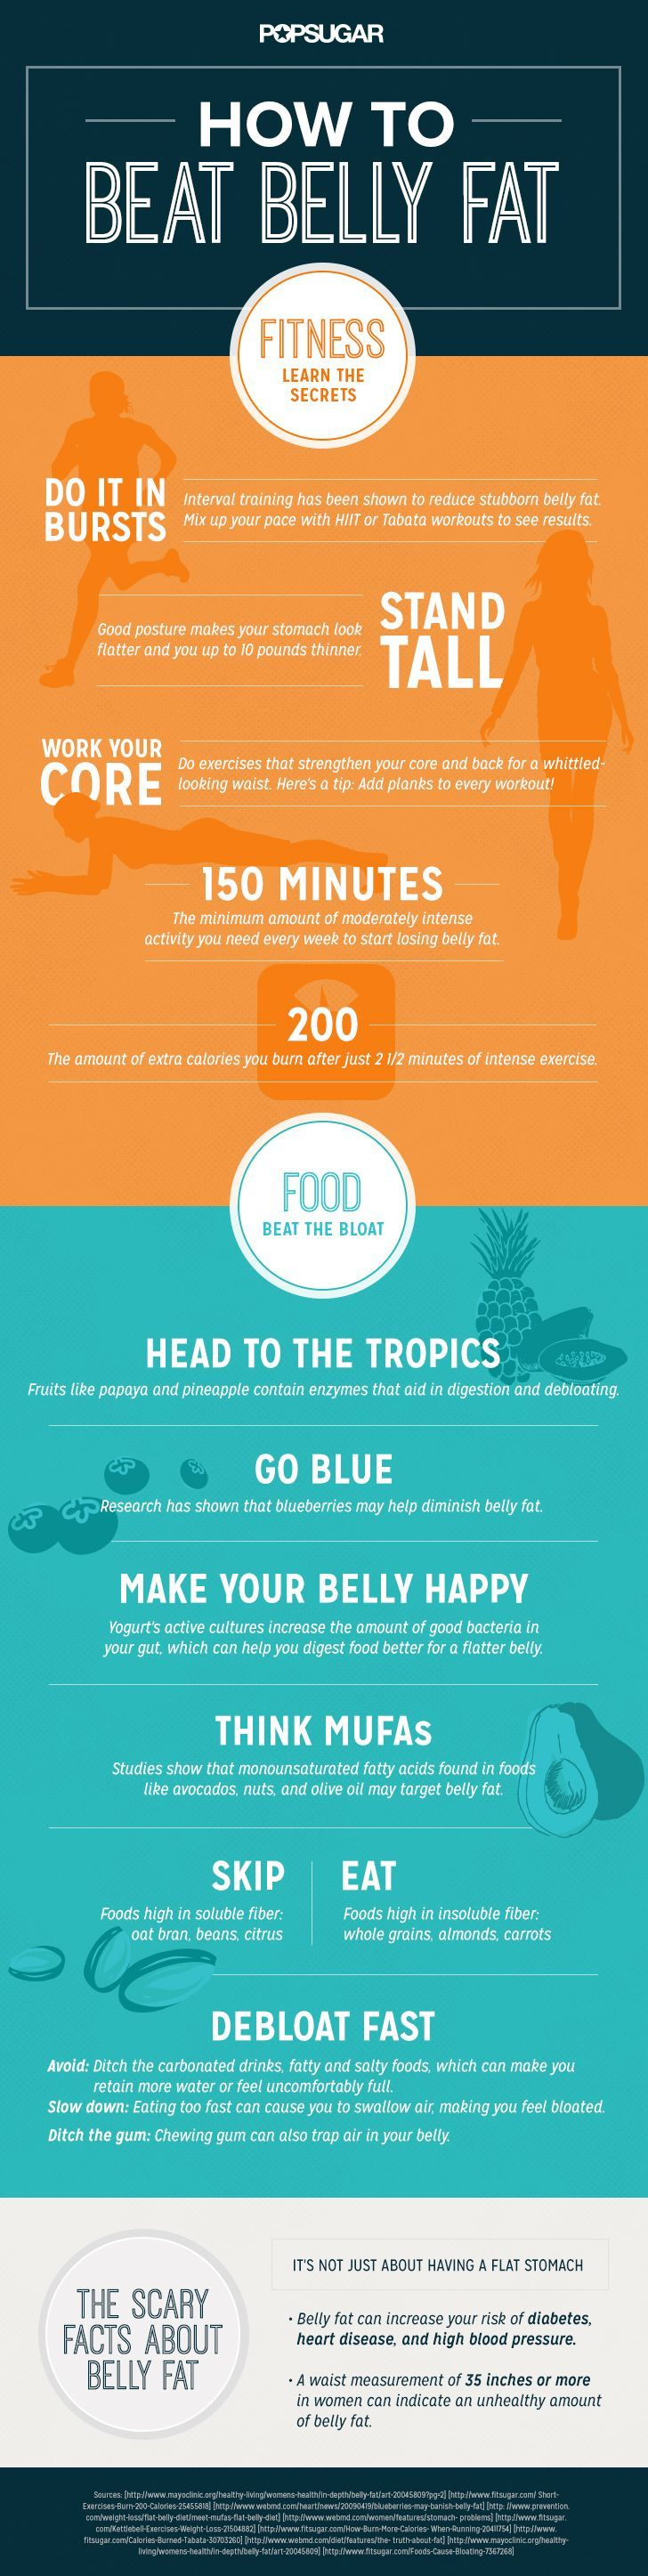 ds-belly-fat-tips